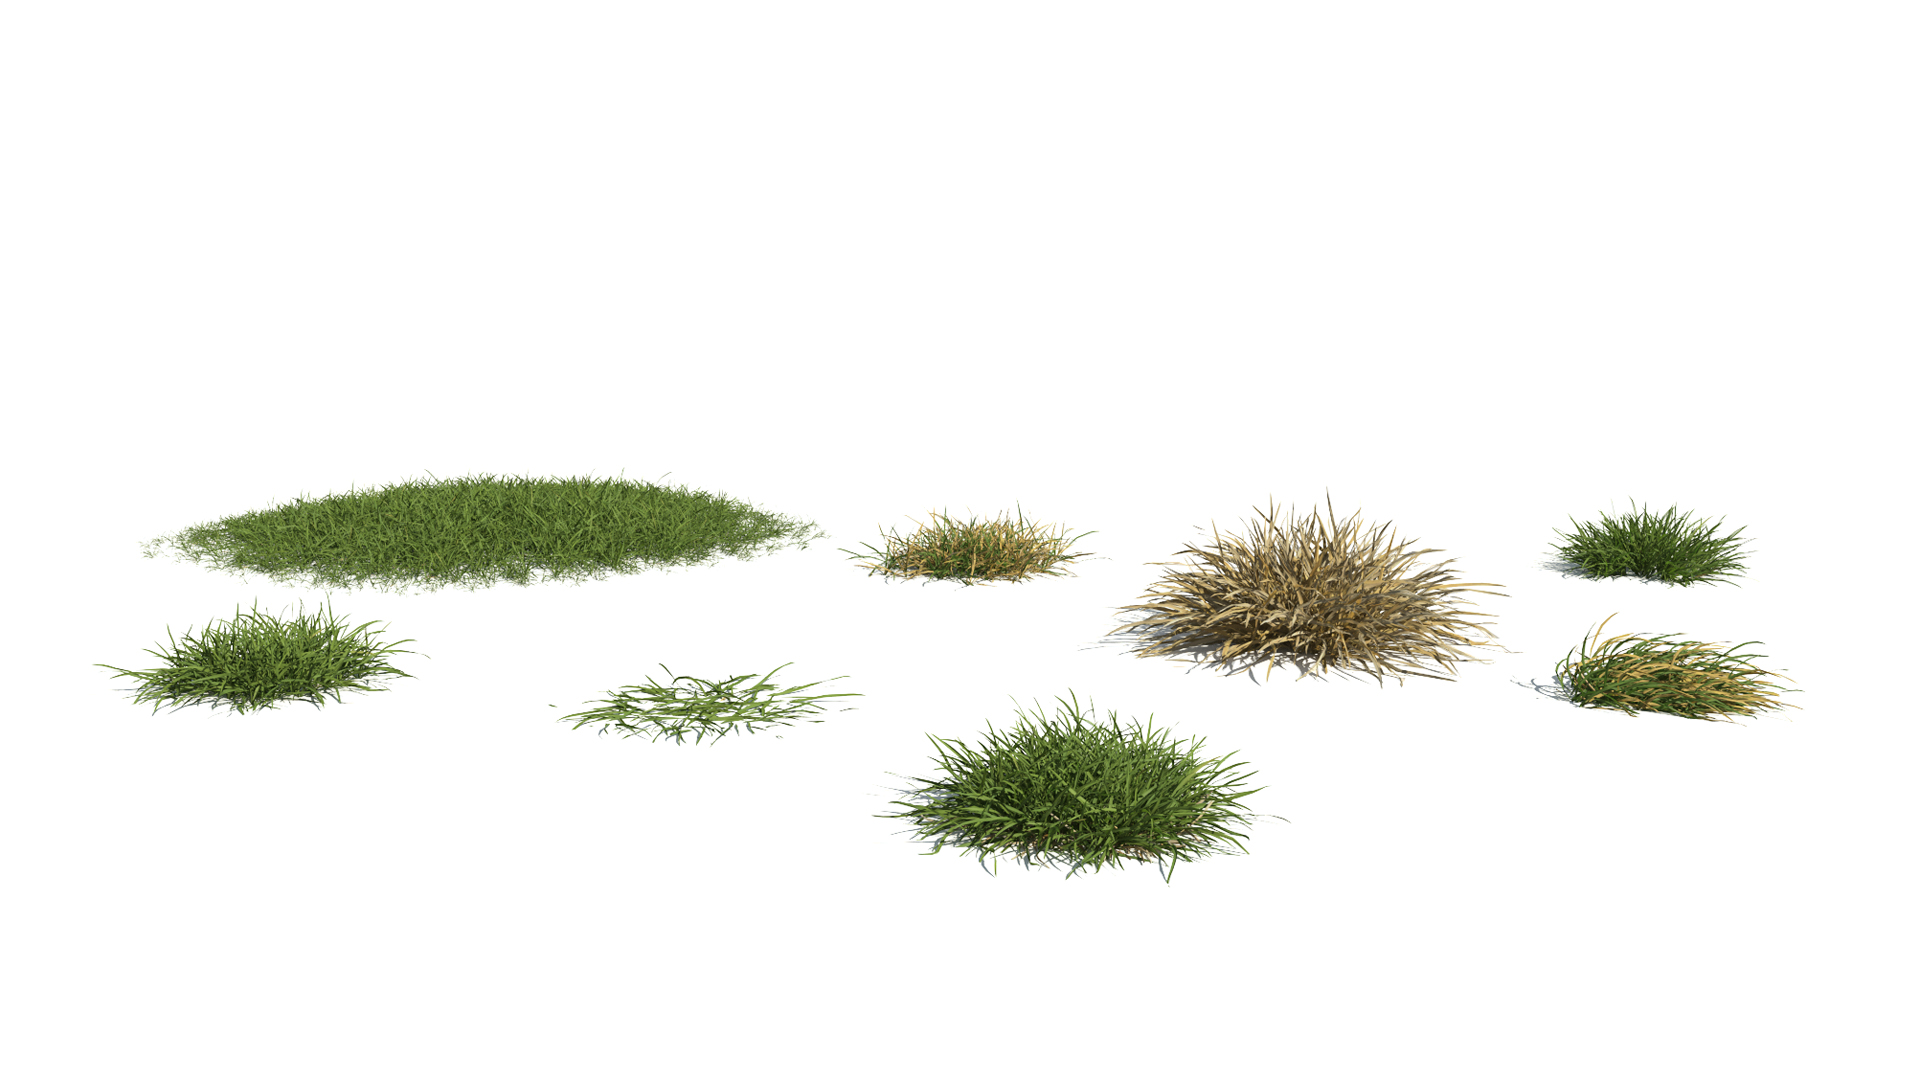 3D model of the Generic grass and lawn engine Generic grass lawn published parameters